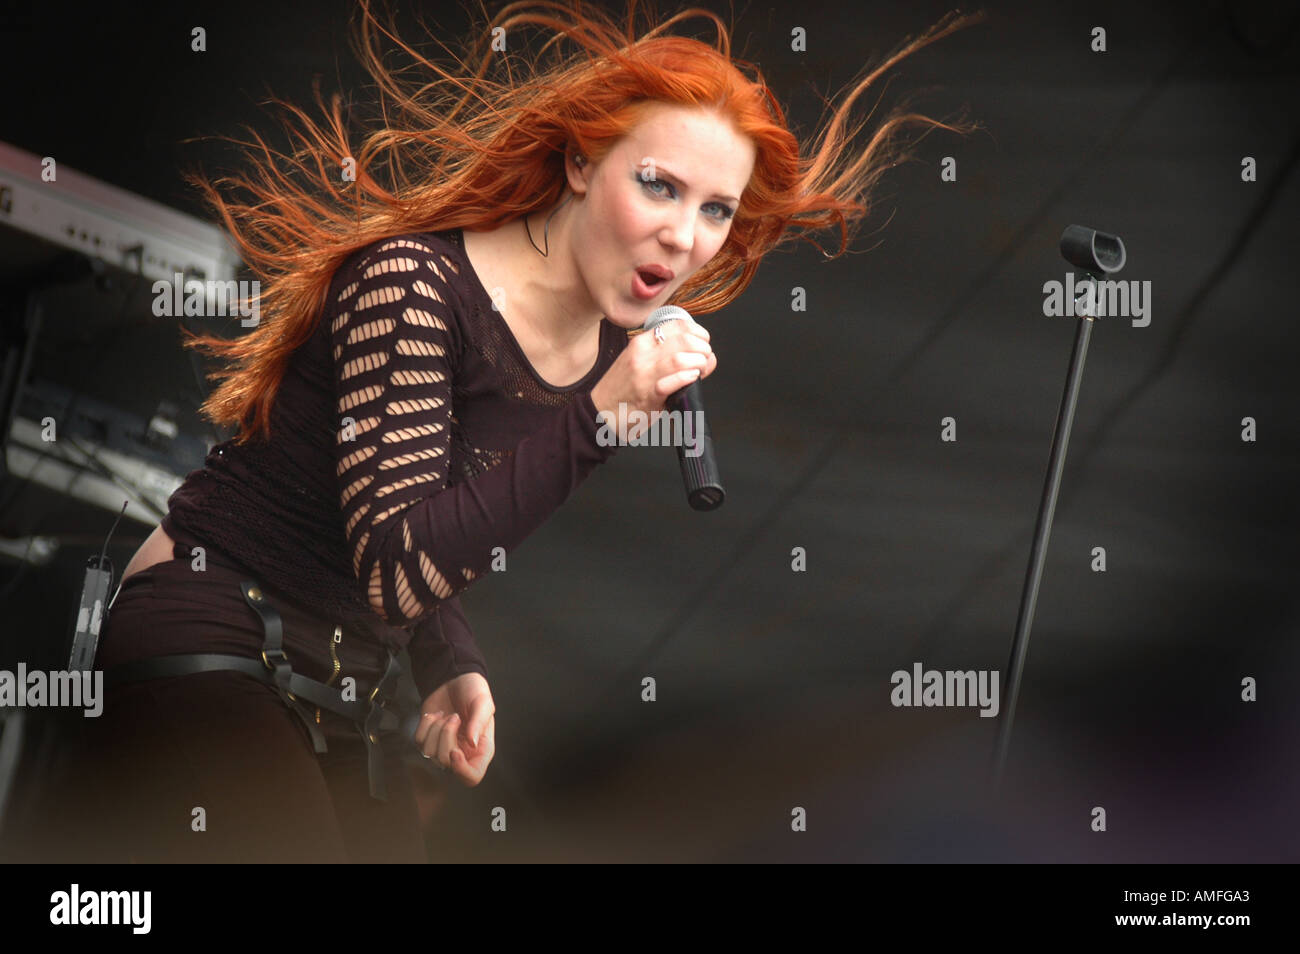 fiery red haired mezzo soprano Simone Simons singer with ...